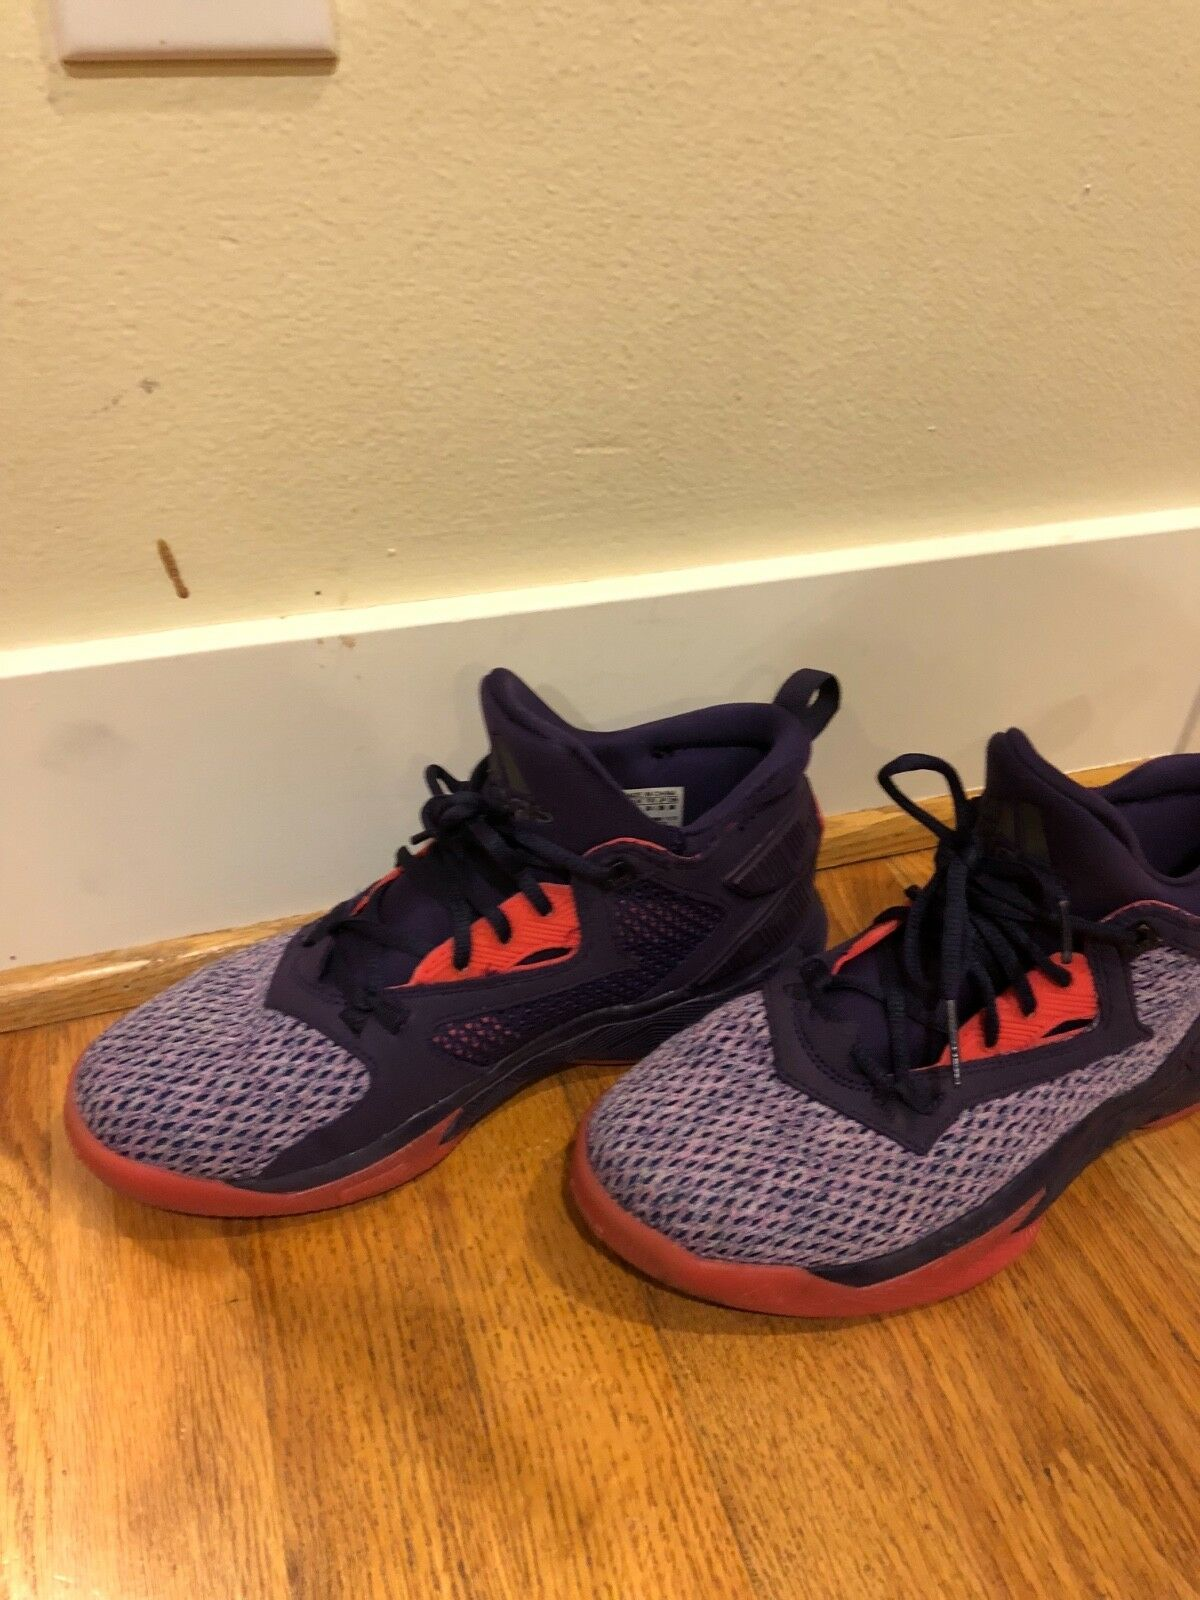 Dame 2, size 6.5 mens shoes, purple